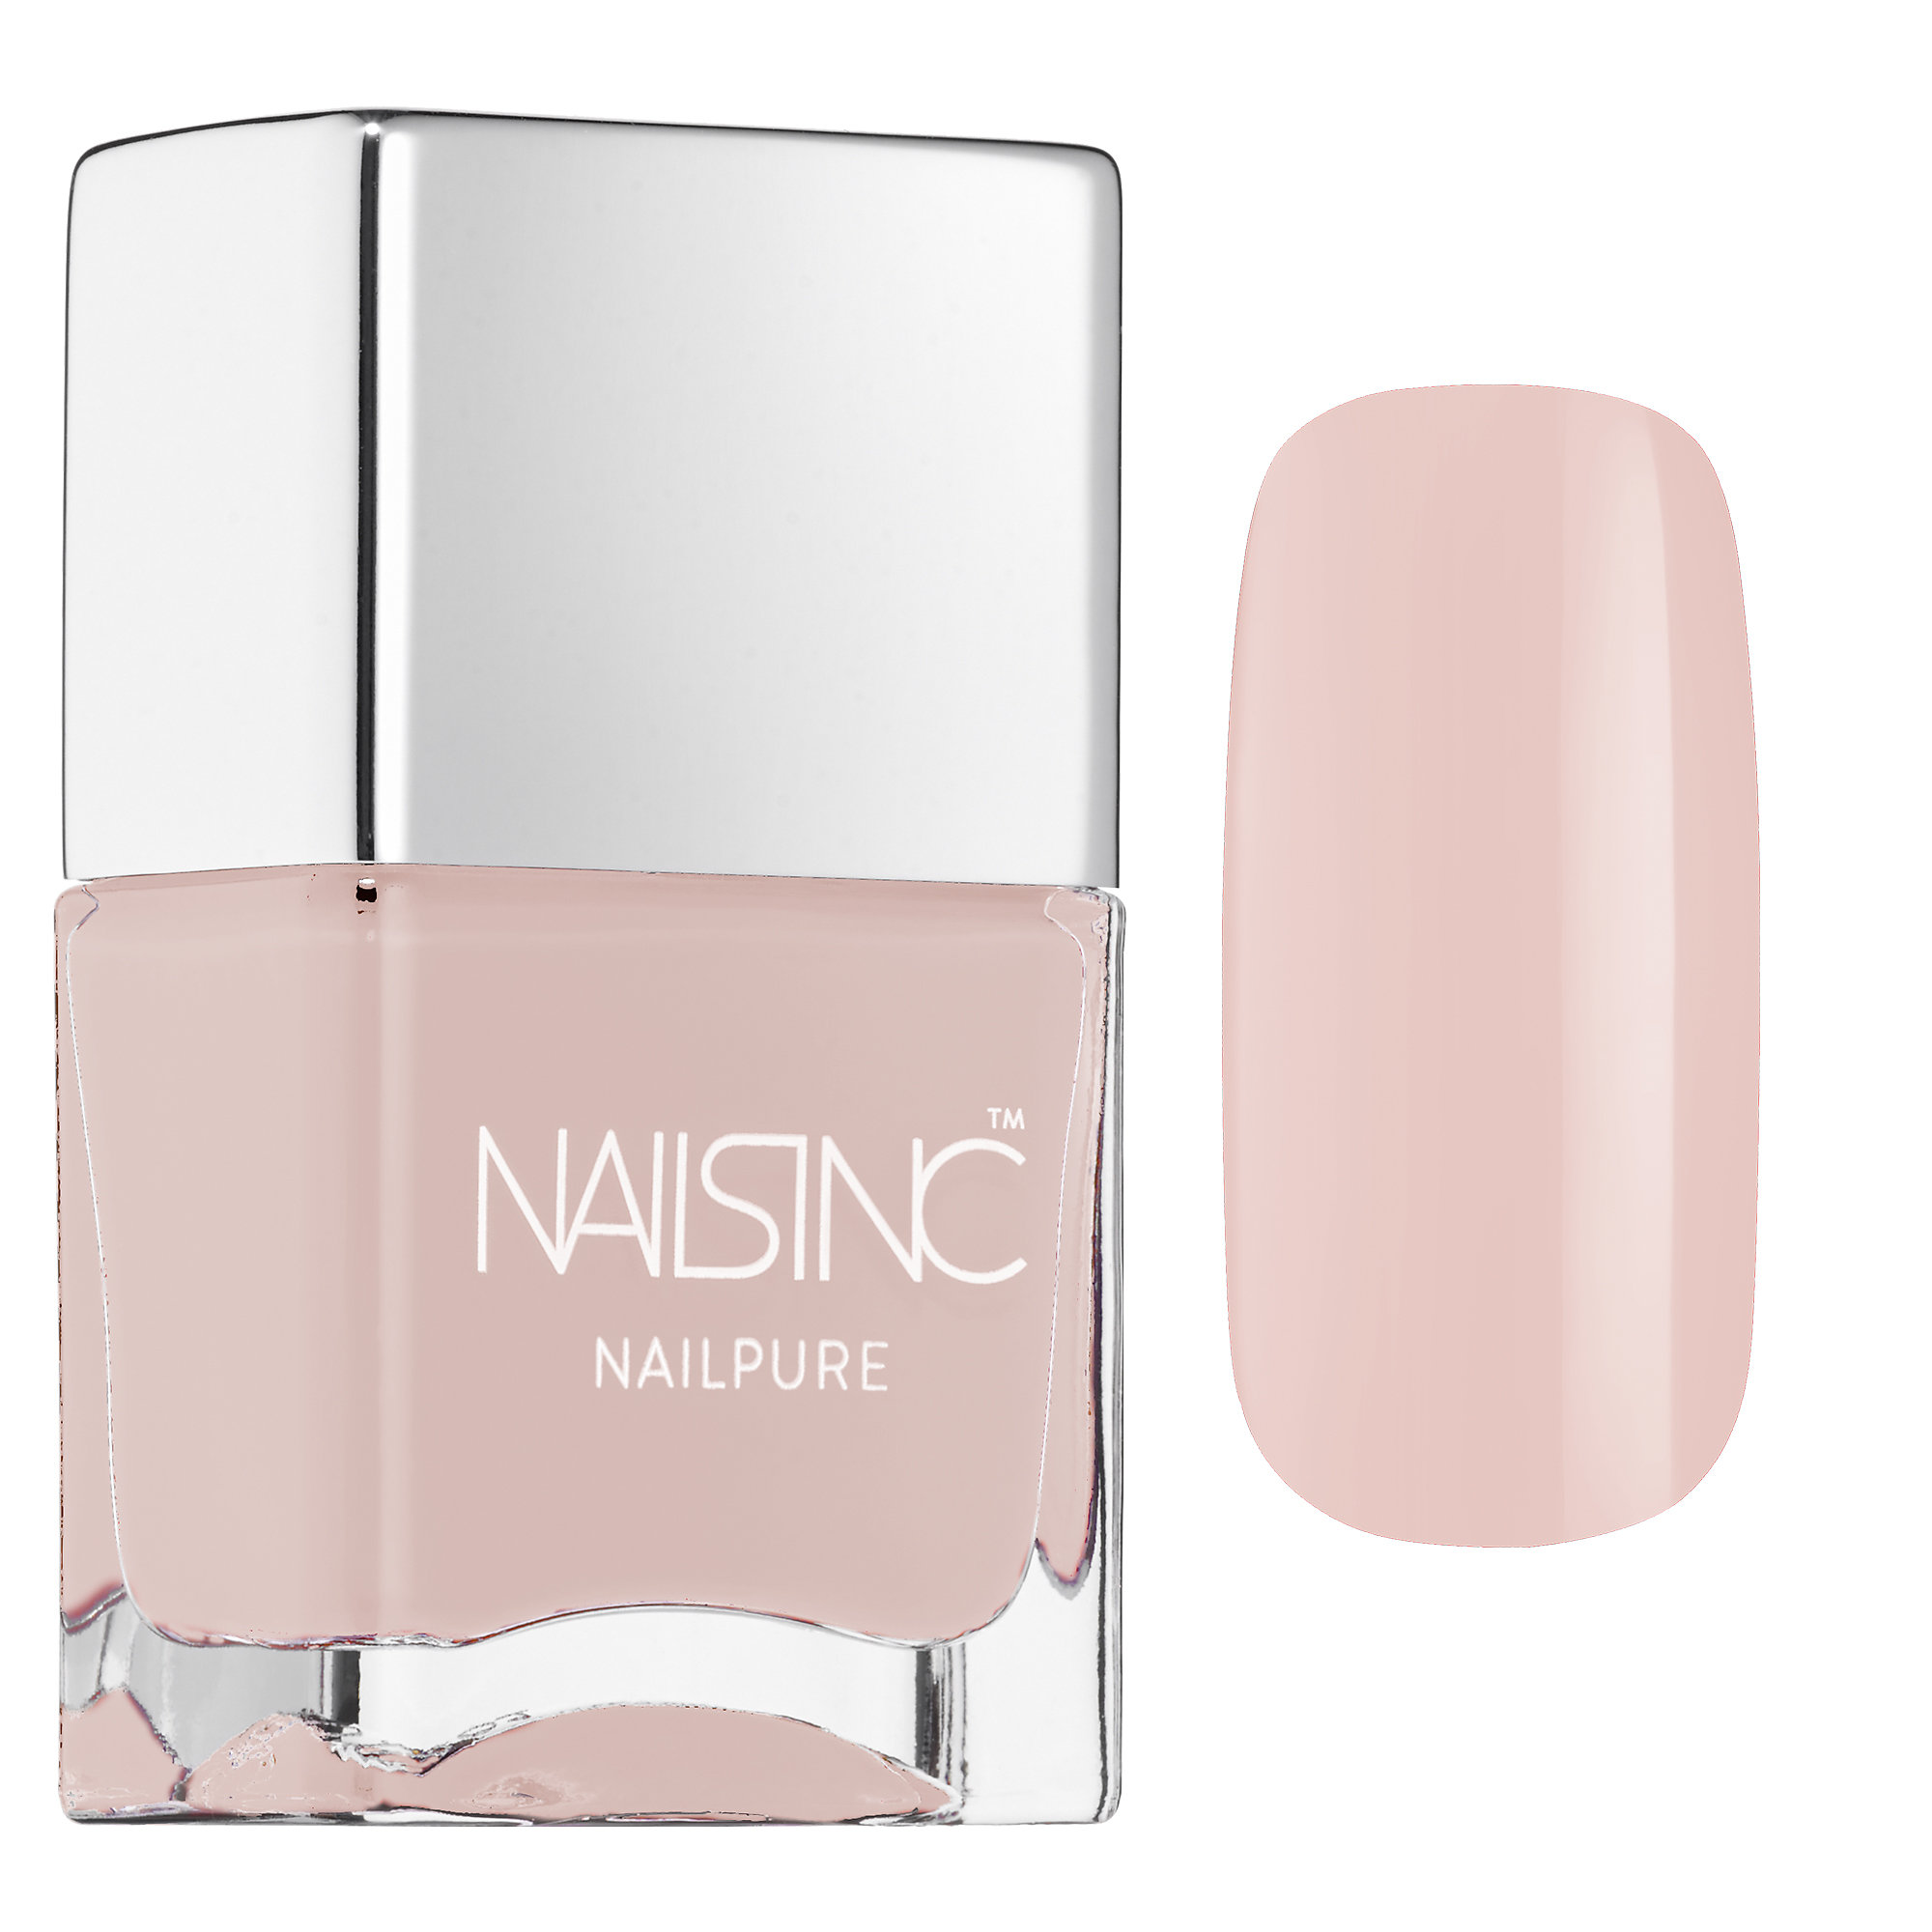 Nails Inc. Nail Pure polish